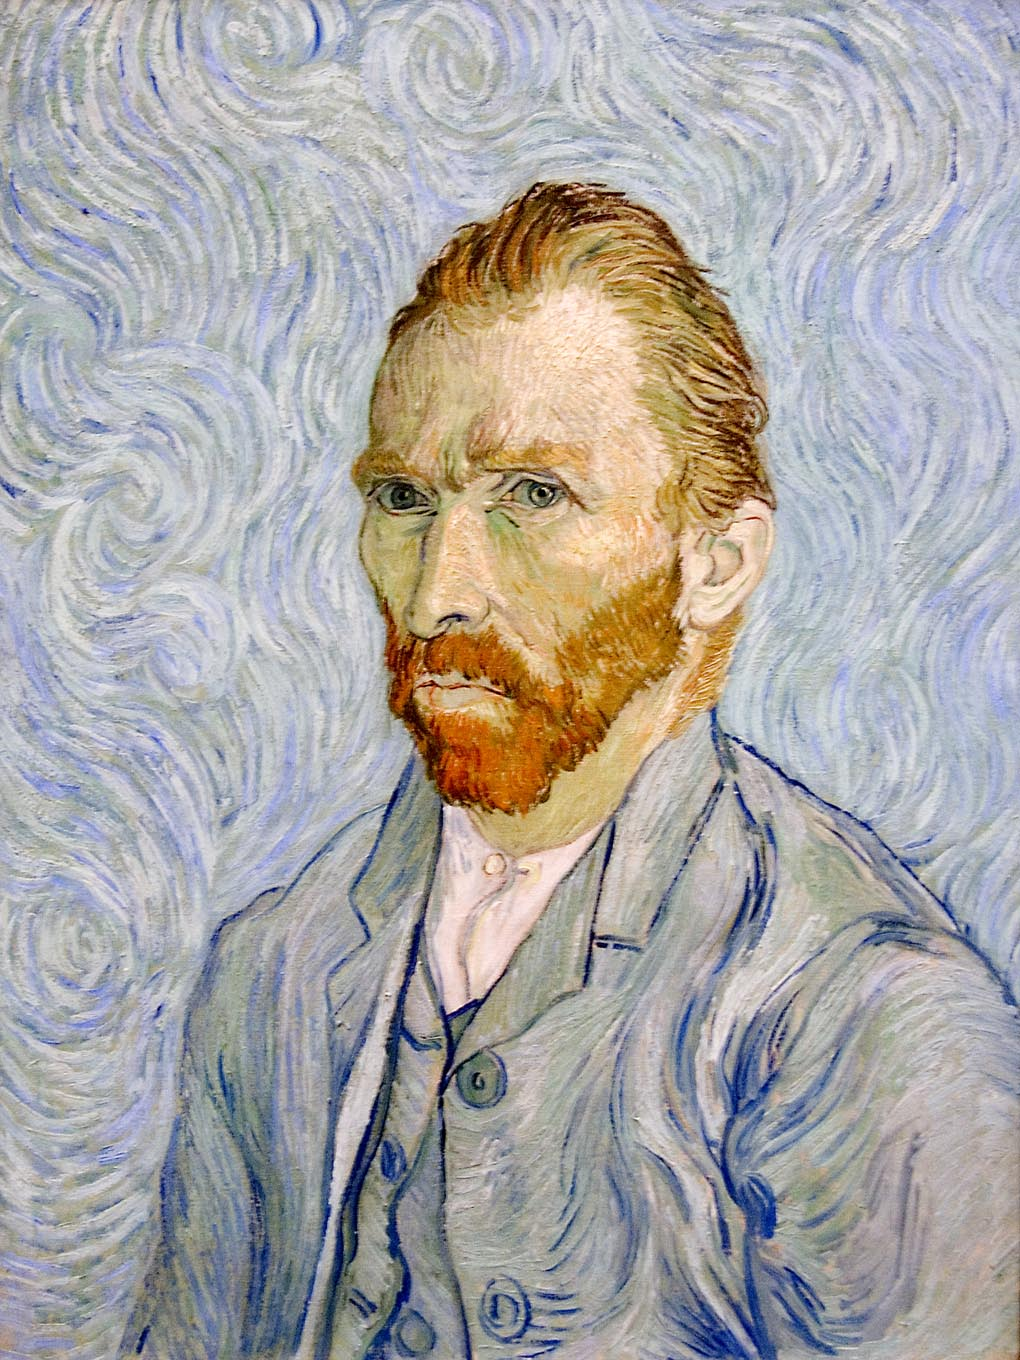 Van Gogh: The Life | A Piece of Monologue: Literature, Philosophy and the Arts